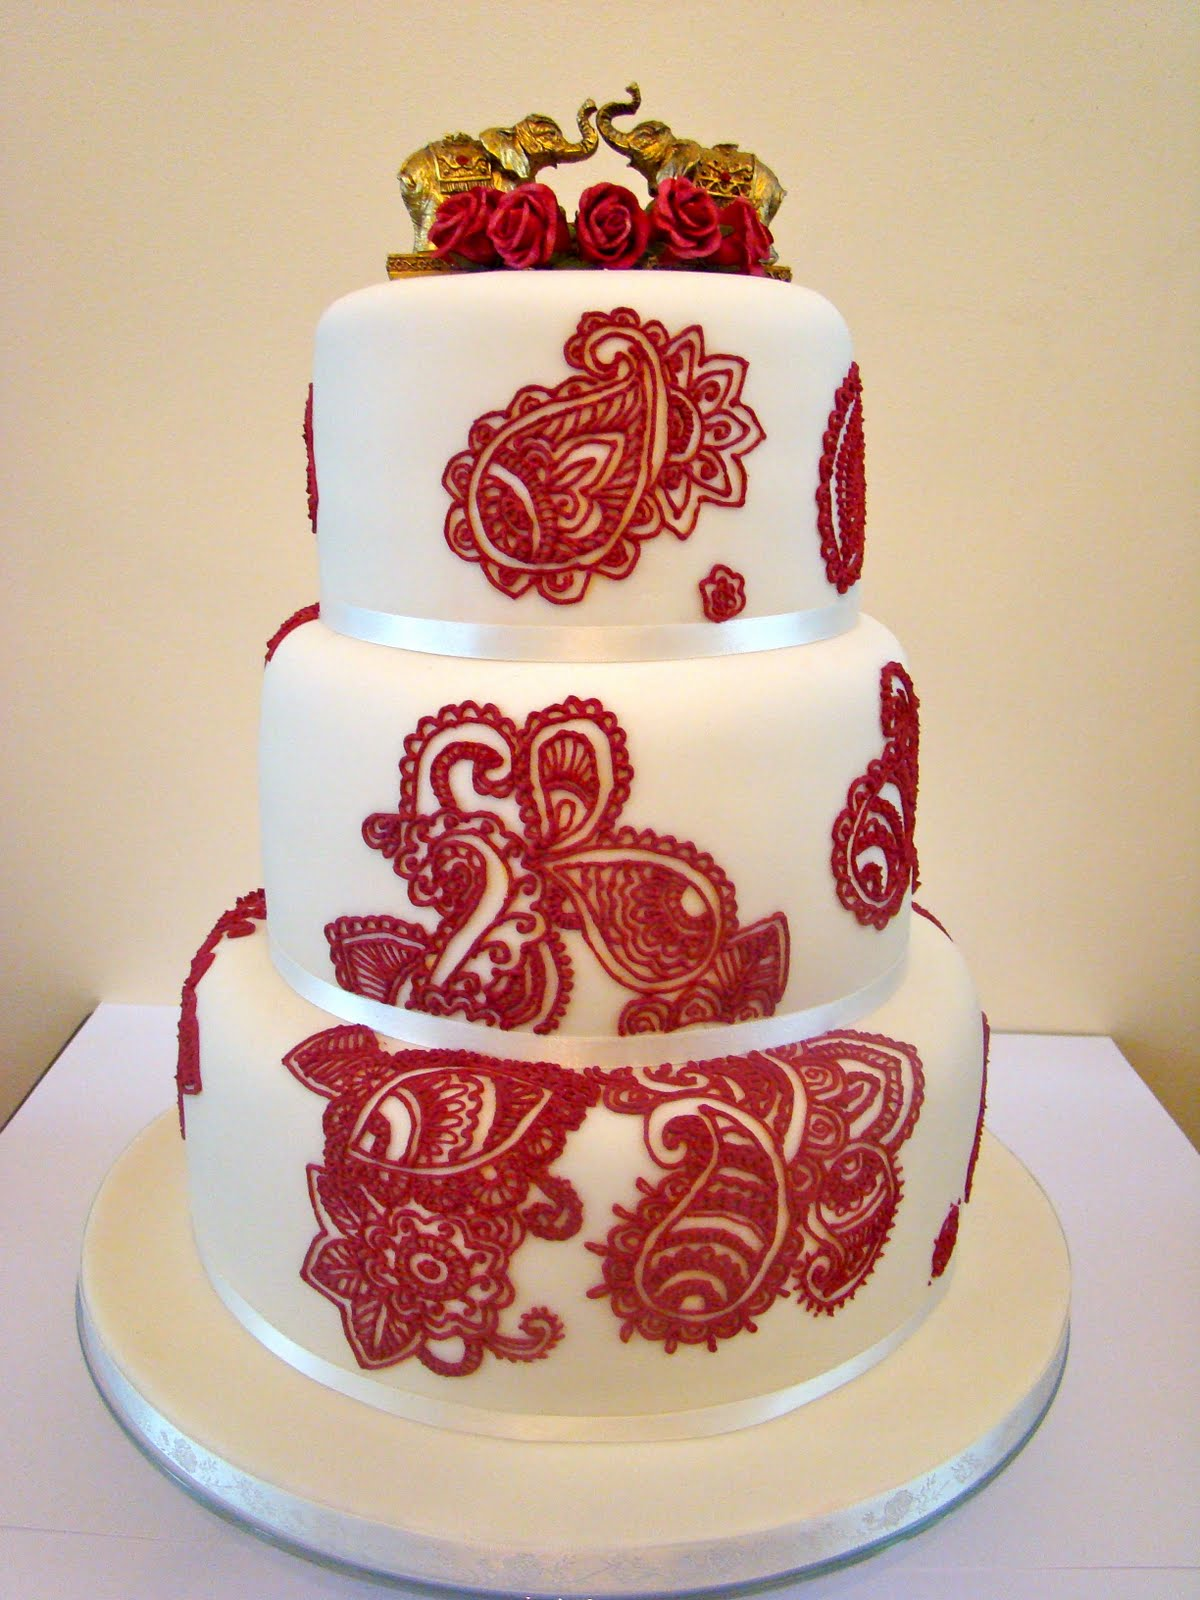 Mehndi Patterns For Cakes : Mehndi wedding cake boutique shop